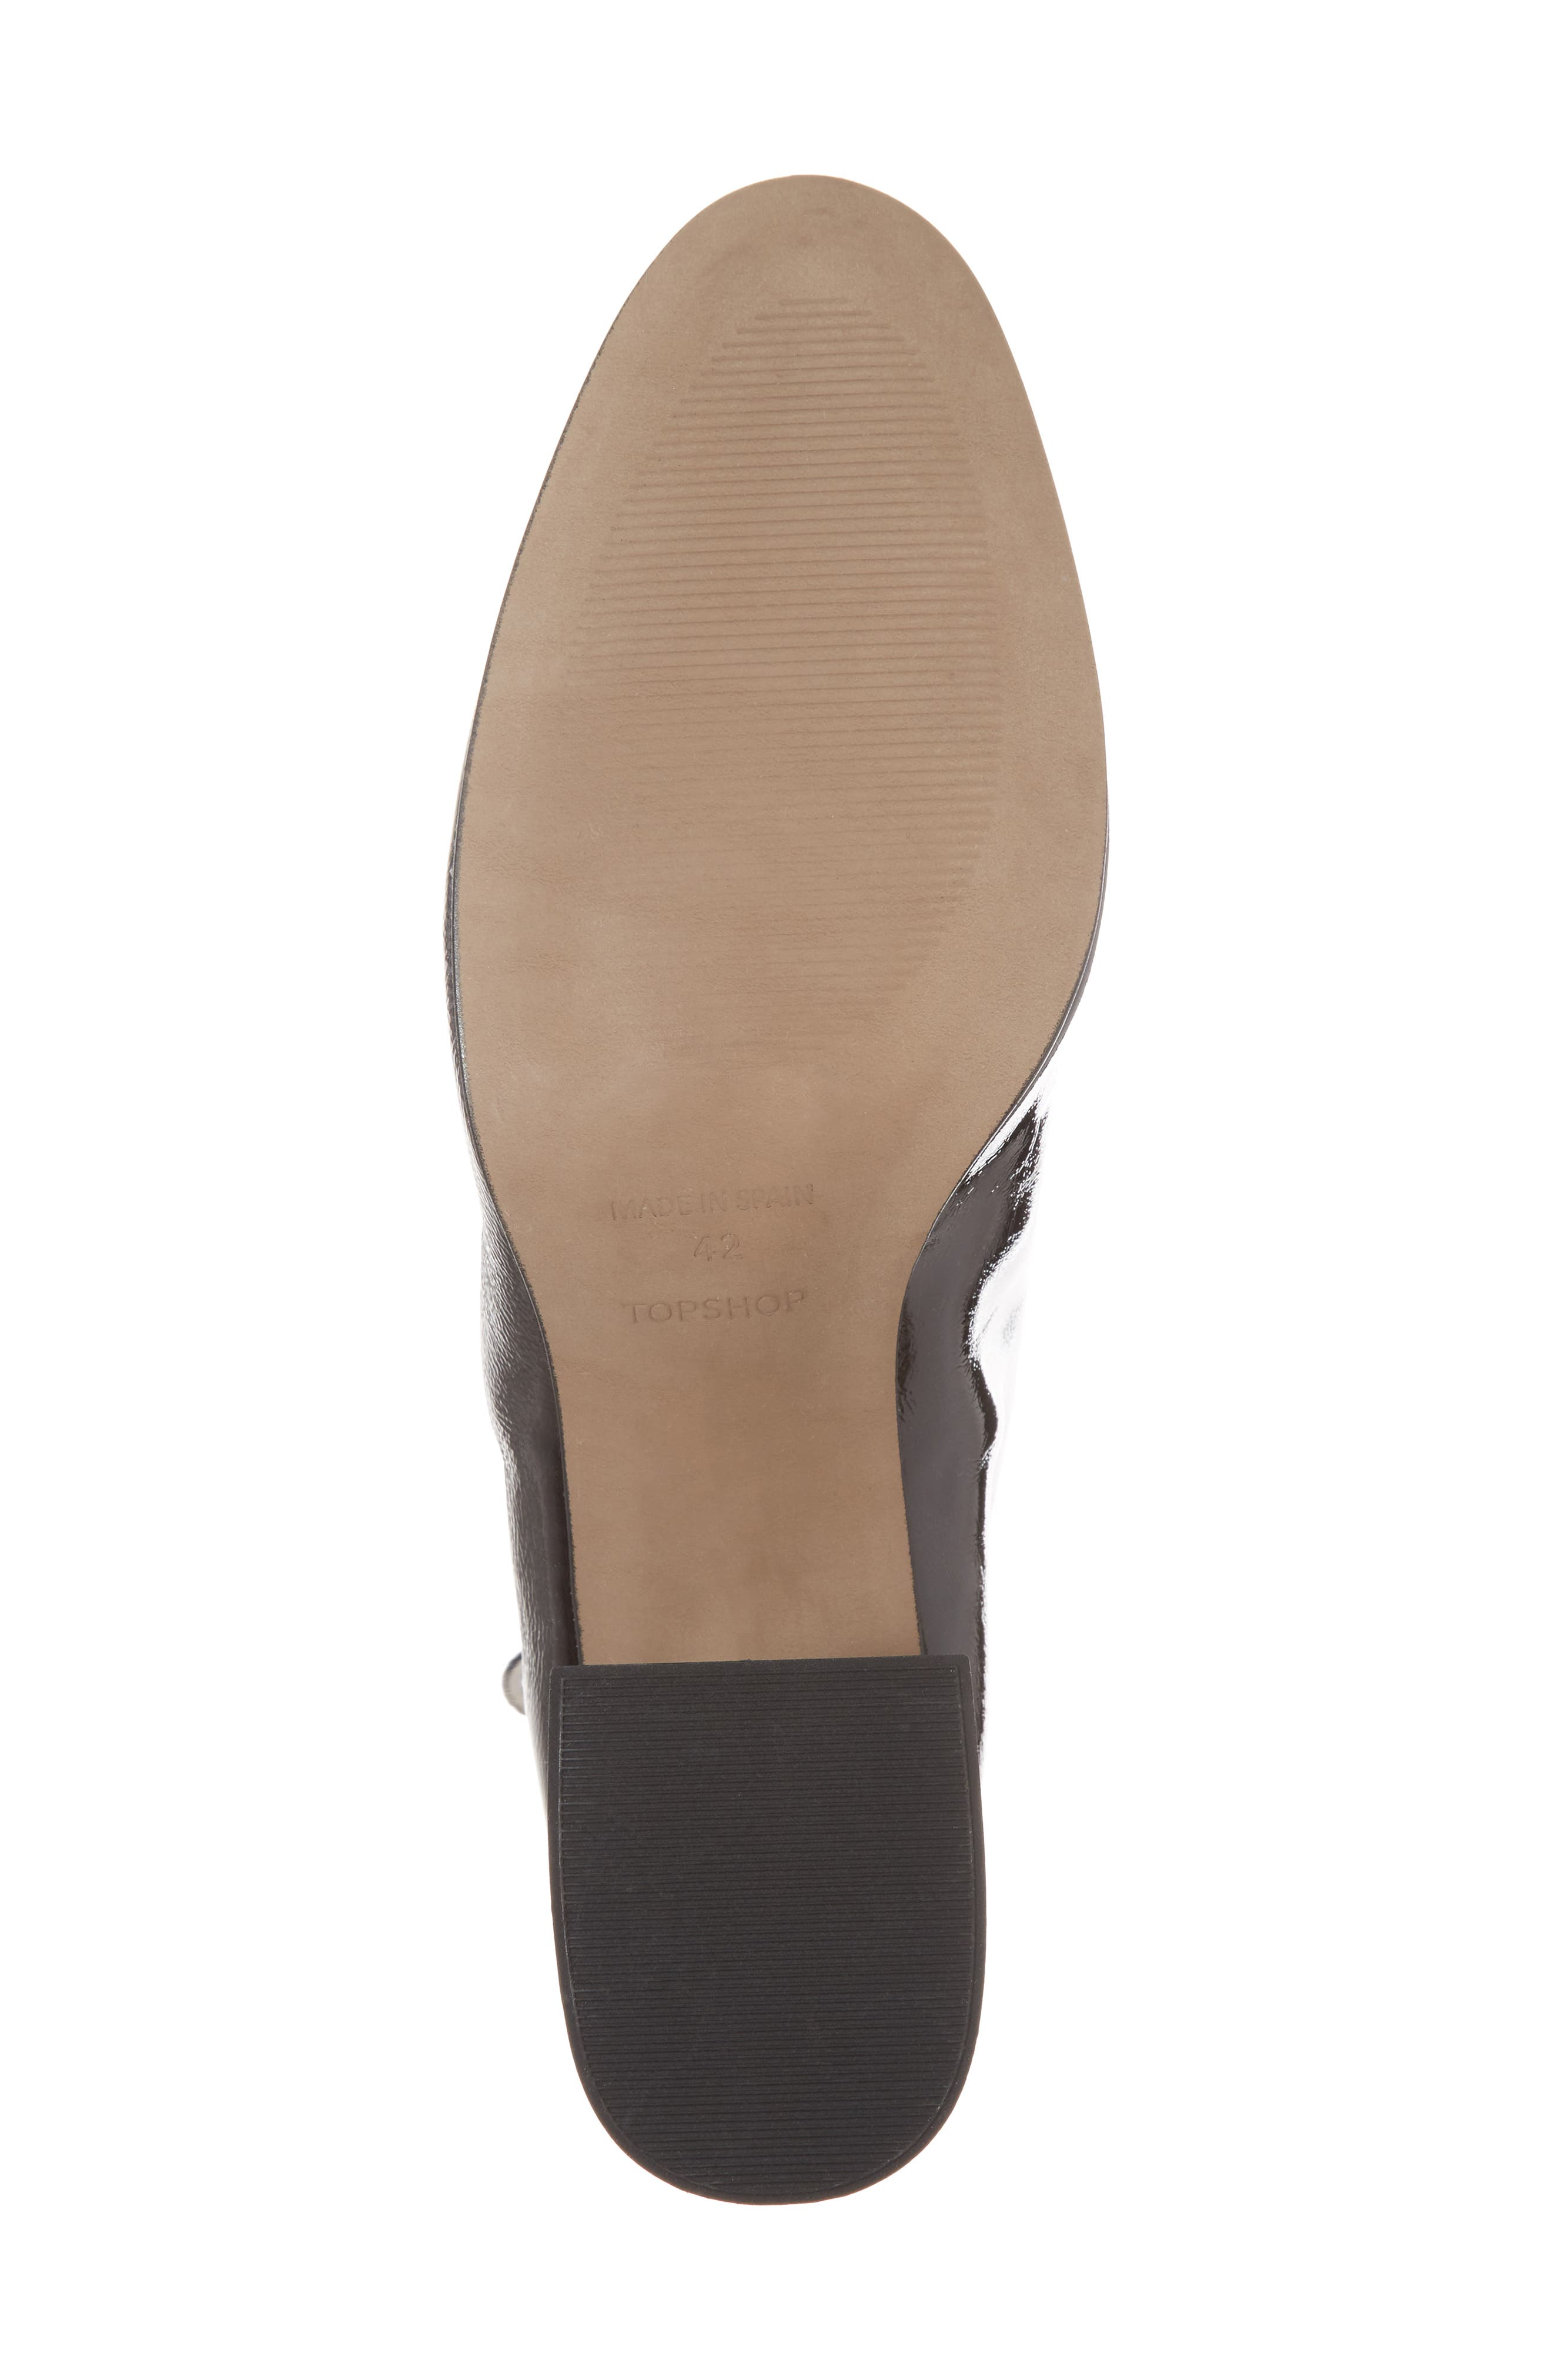 Mighty Flared Heel Bootie,                             Alternate thumbnail 6, color,                             Black